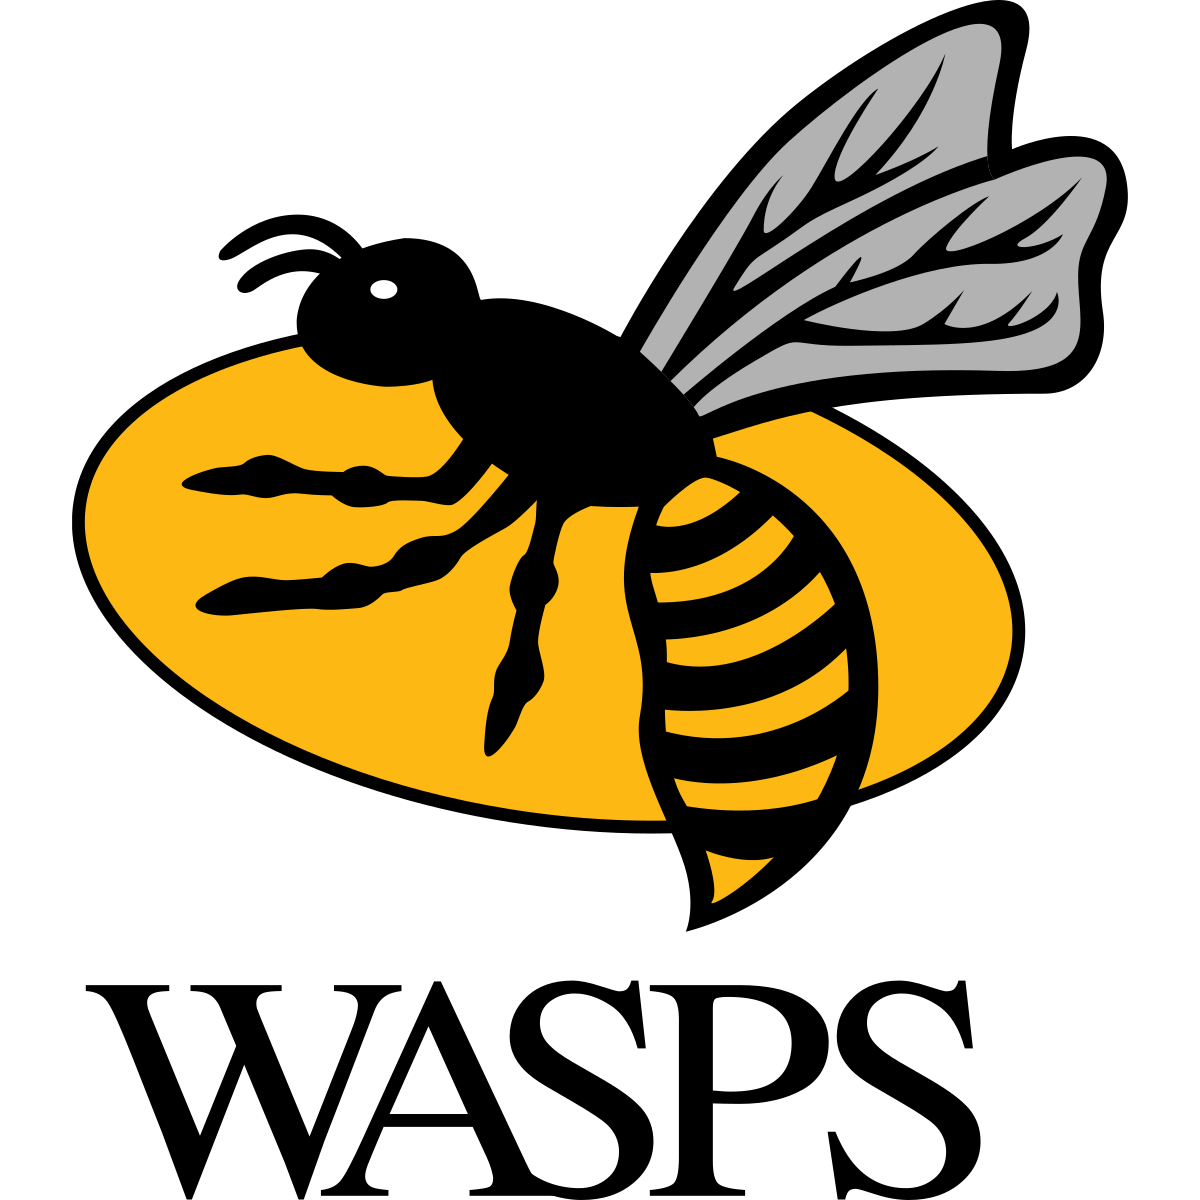 Wasps logo colour clear background large